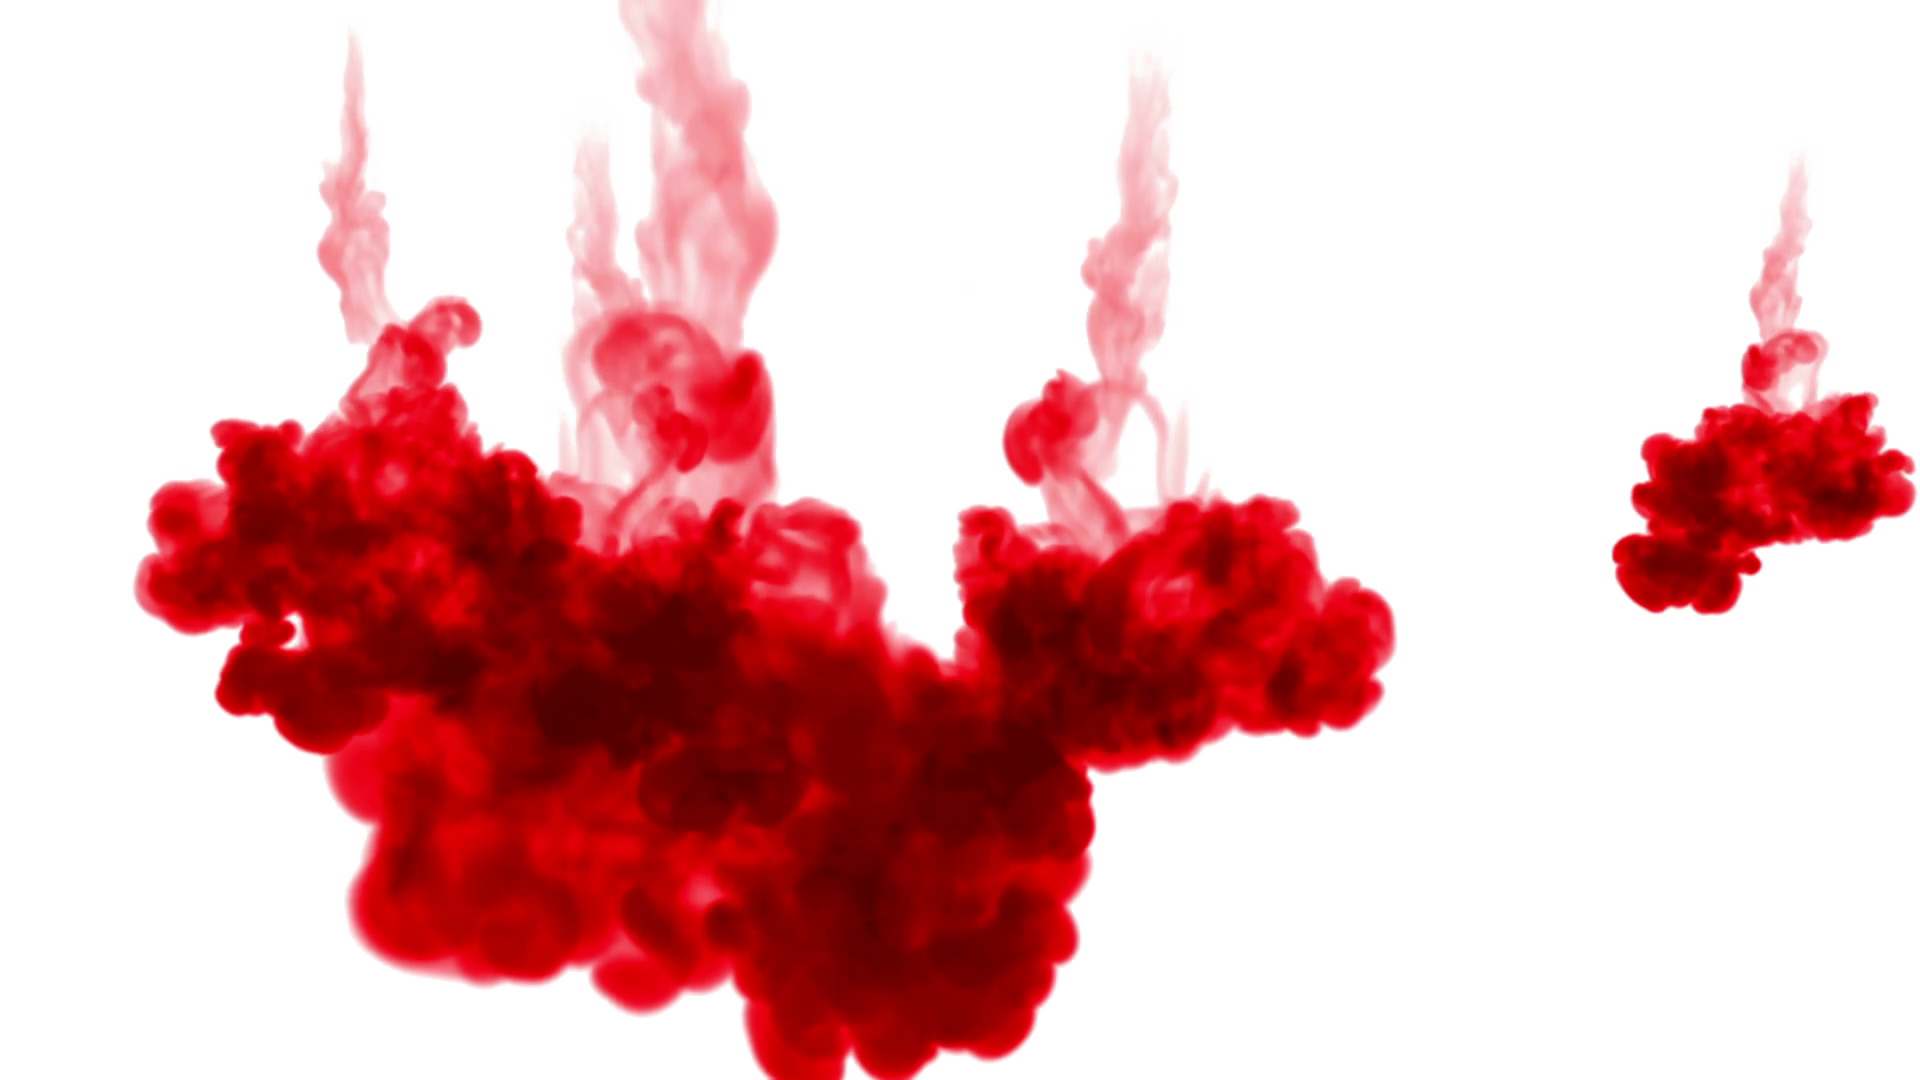 Red smoke png. Download image mart